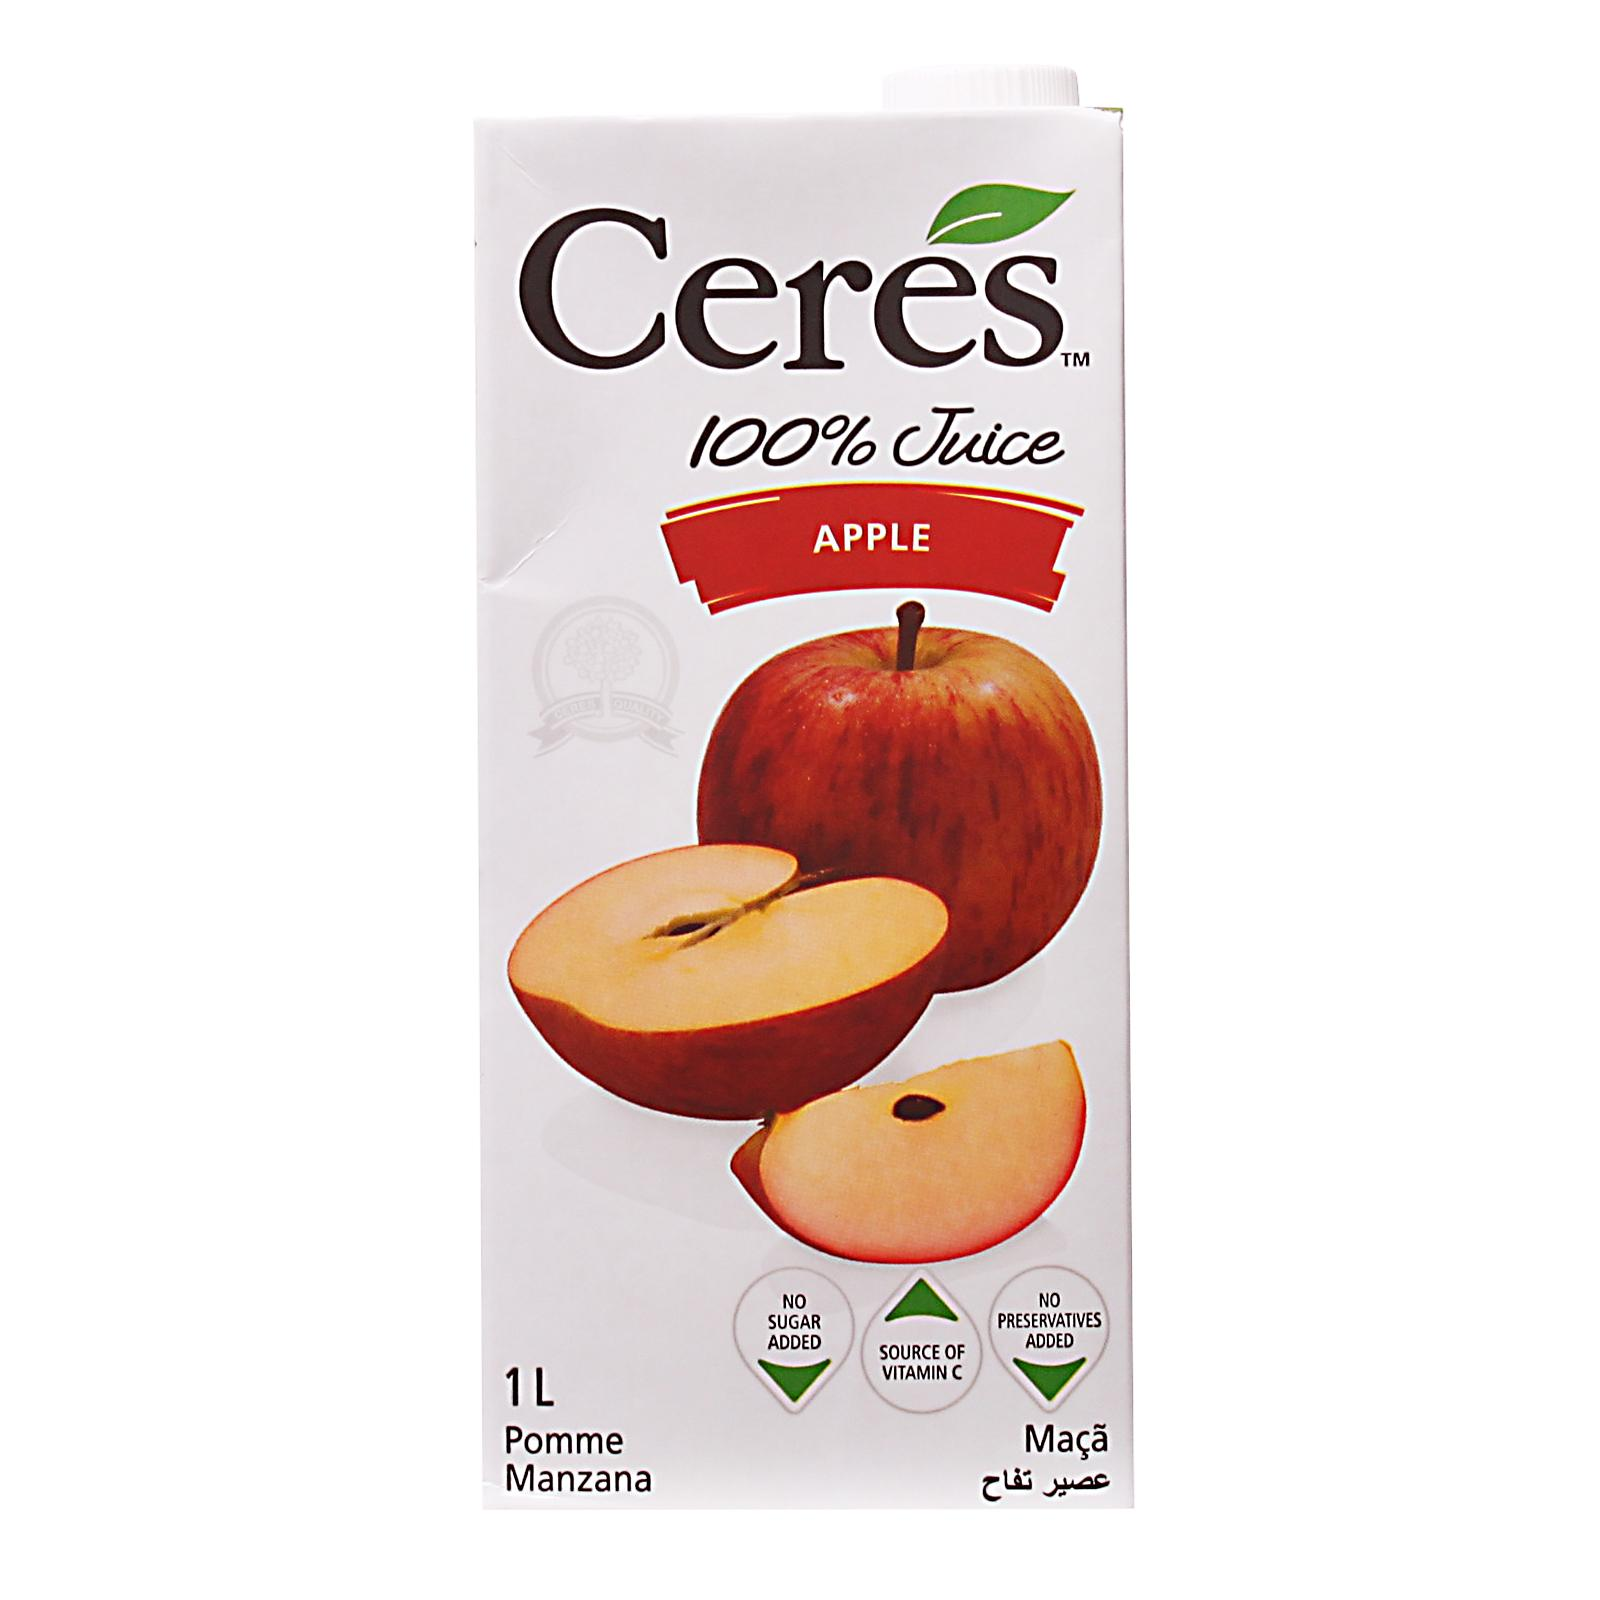 CERES Apple 100% Juice 1L